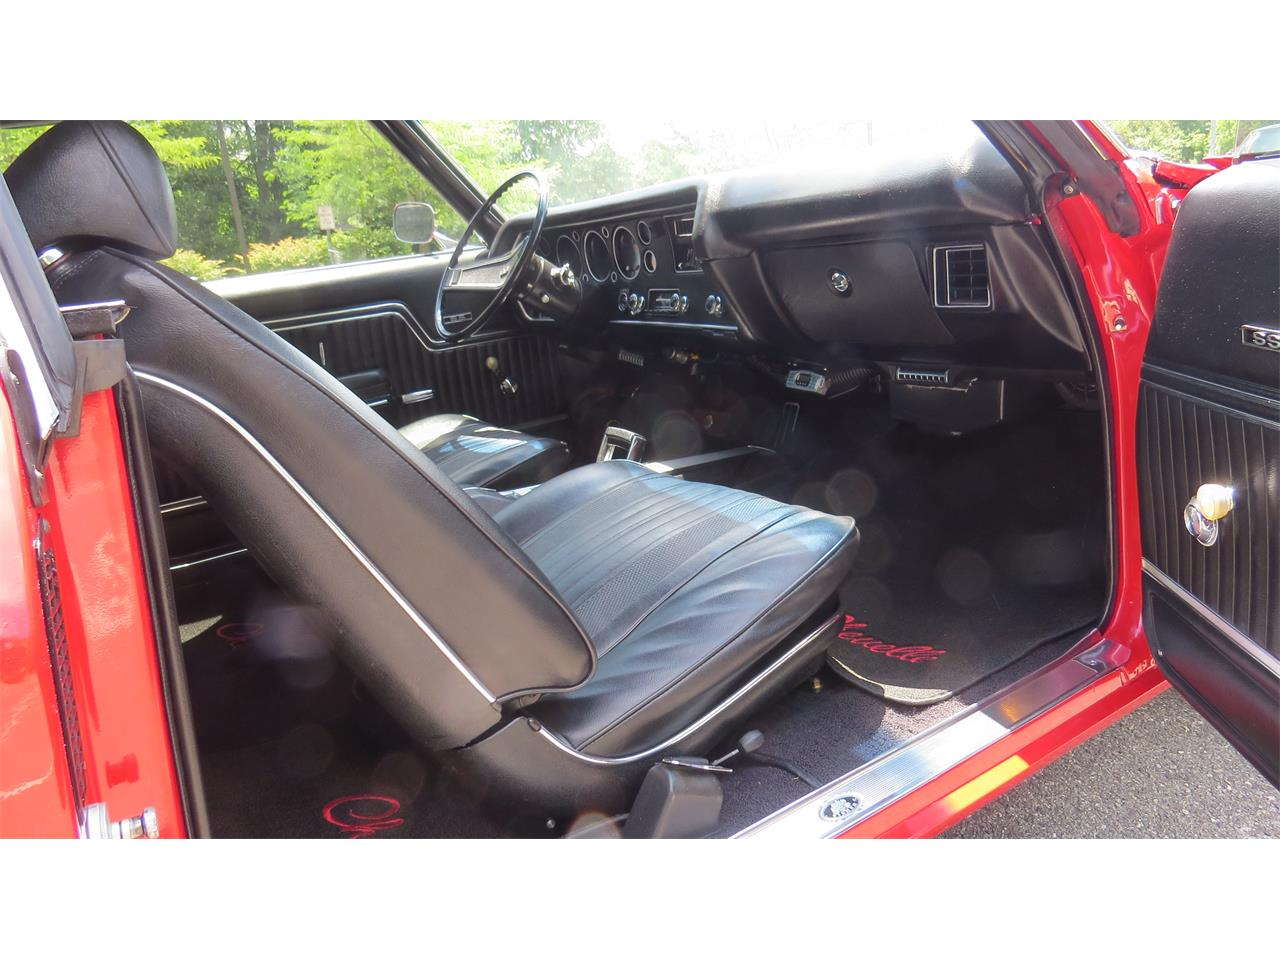 Large Picture of 1970 Chevrolet Chevelle SS - $75,000.00 Offered by a Private Seller - PSWS